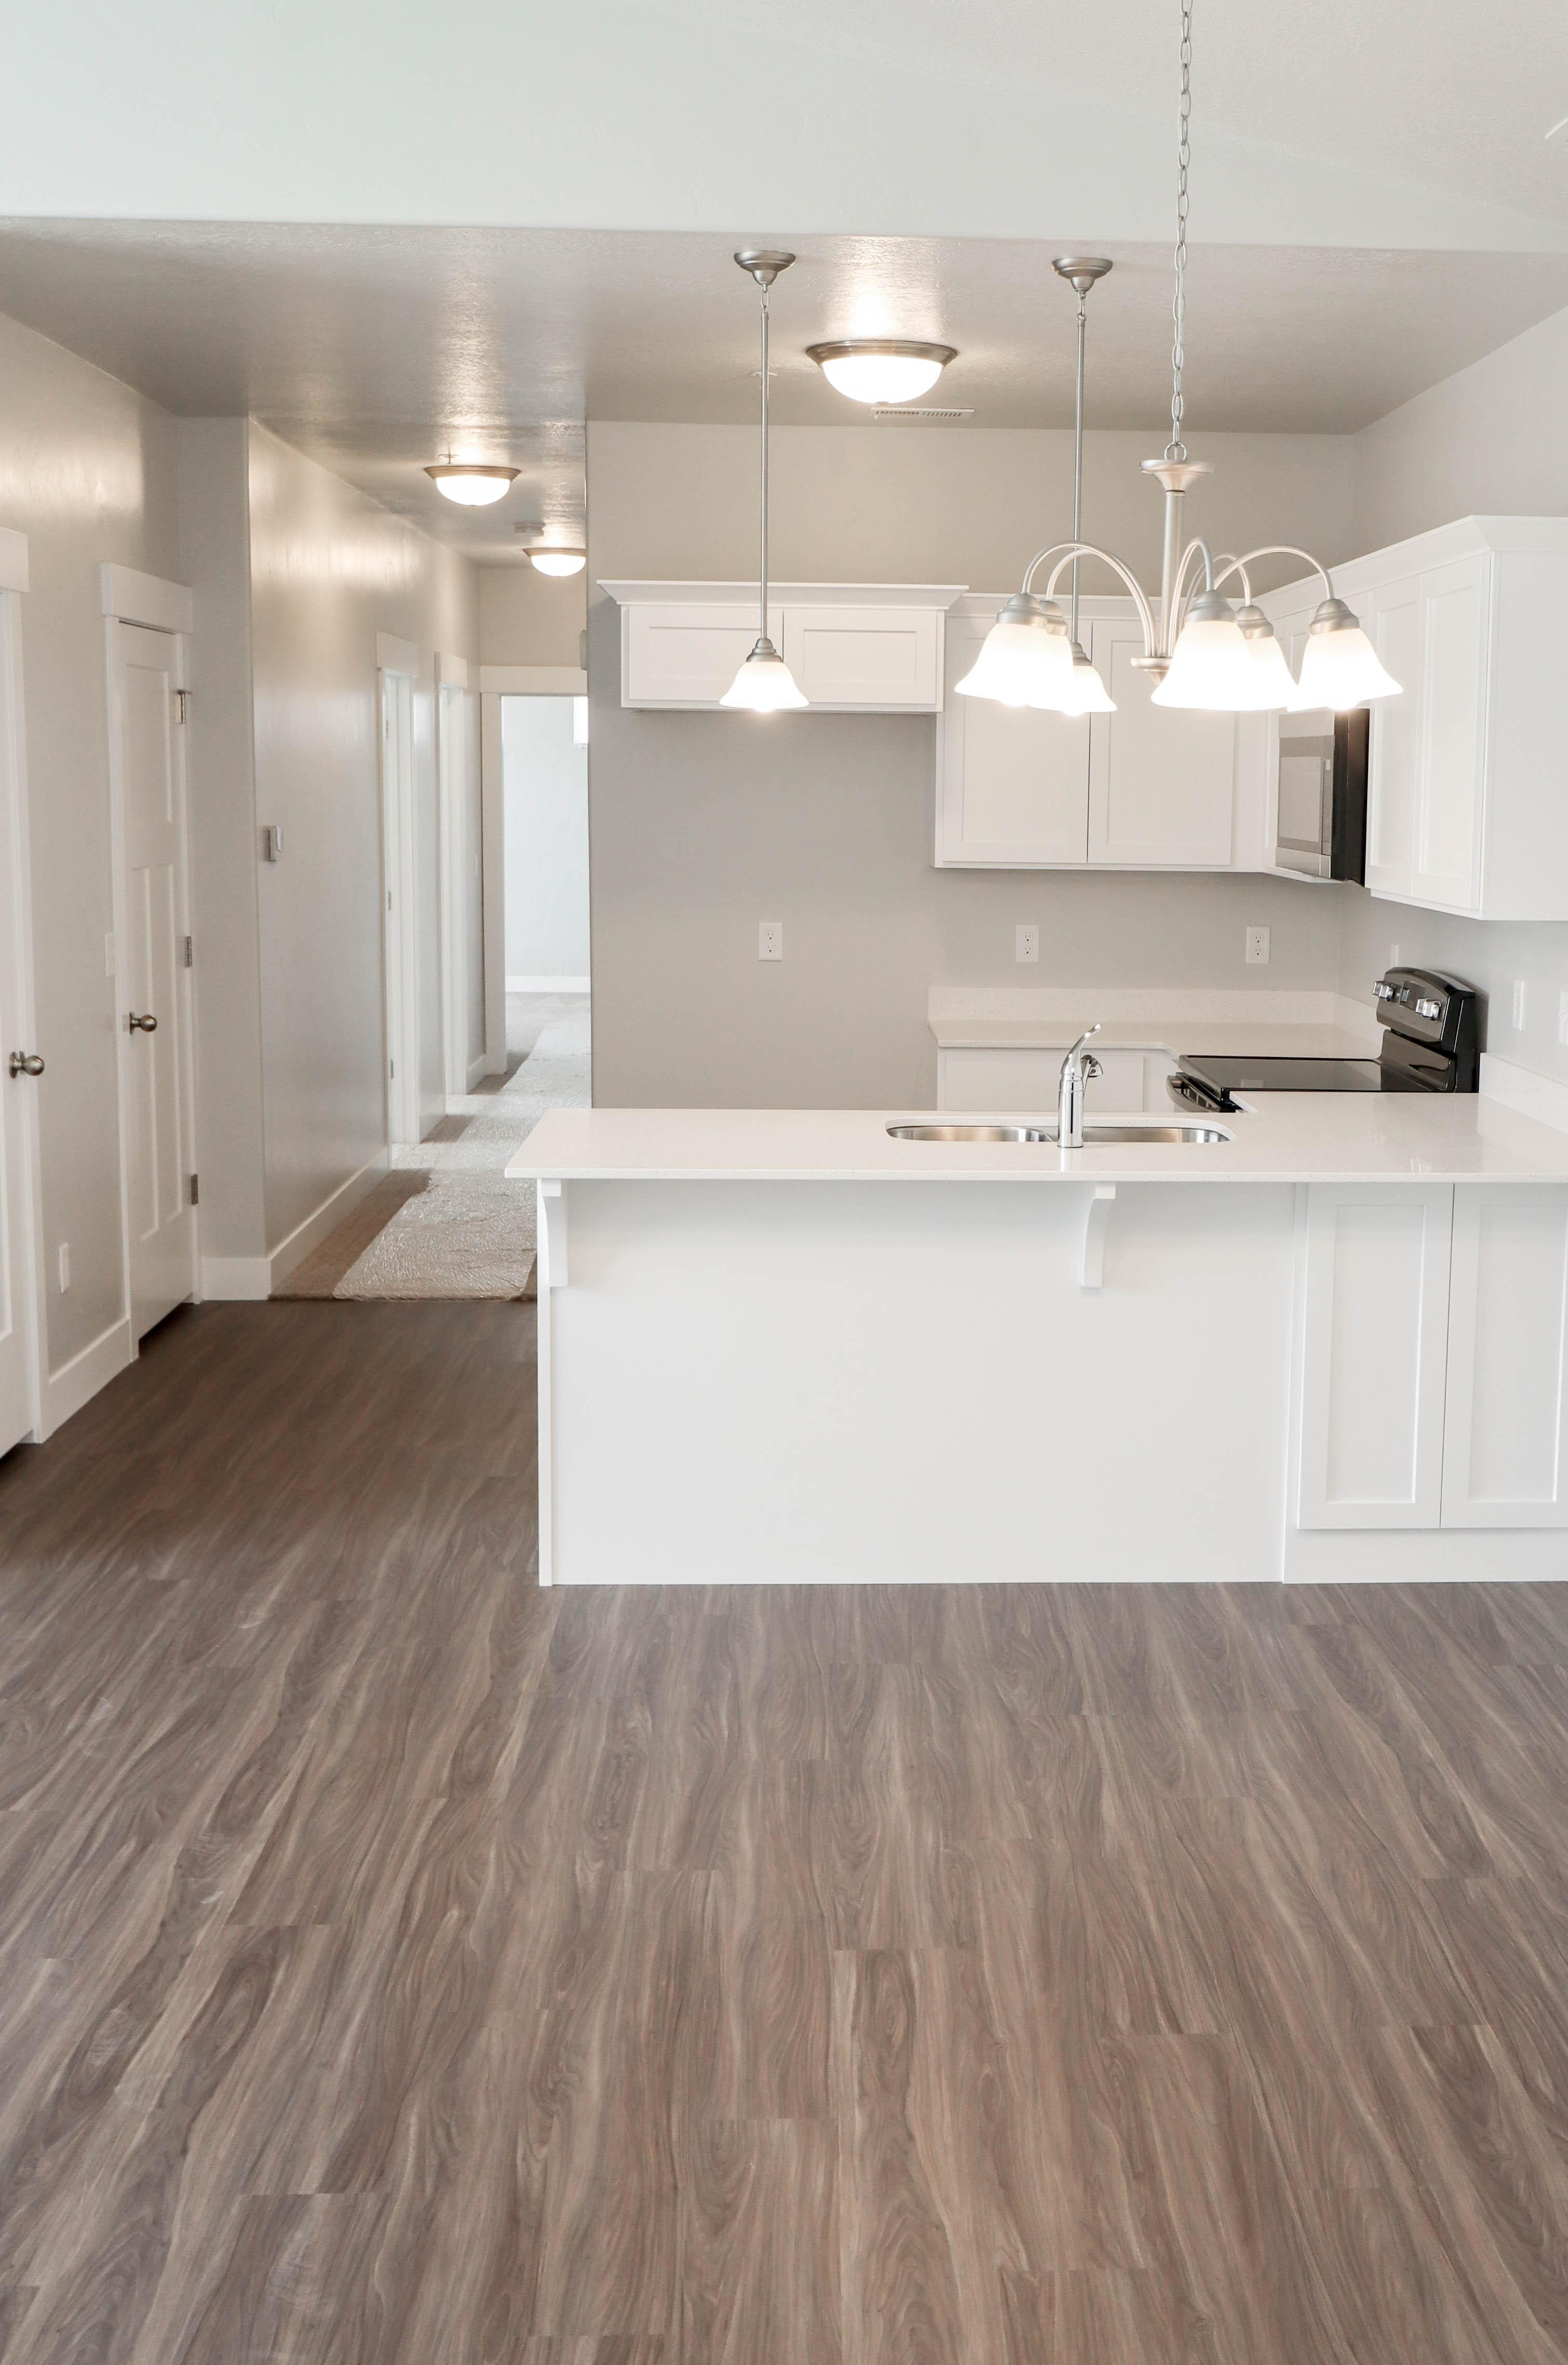 Kitchen featured in the Condominium A Third Level By EDGEhomes in Provo-Orem, UT